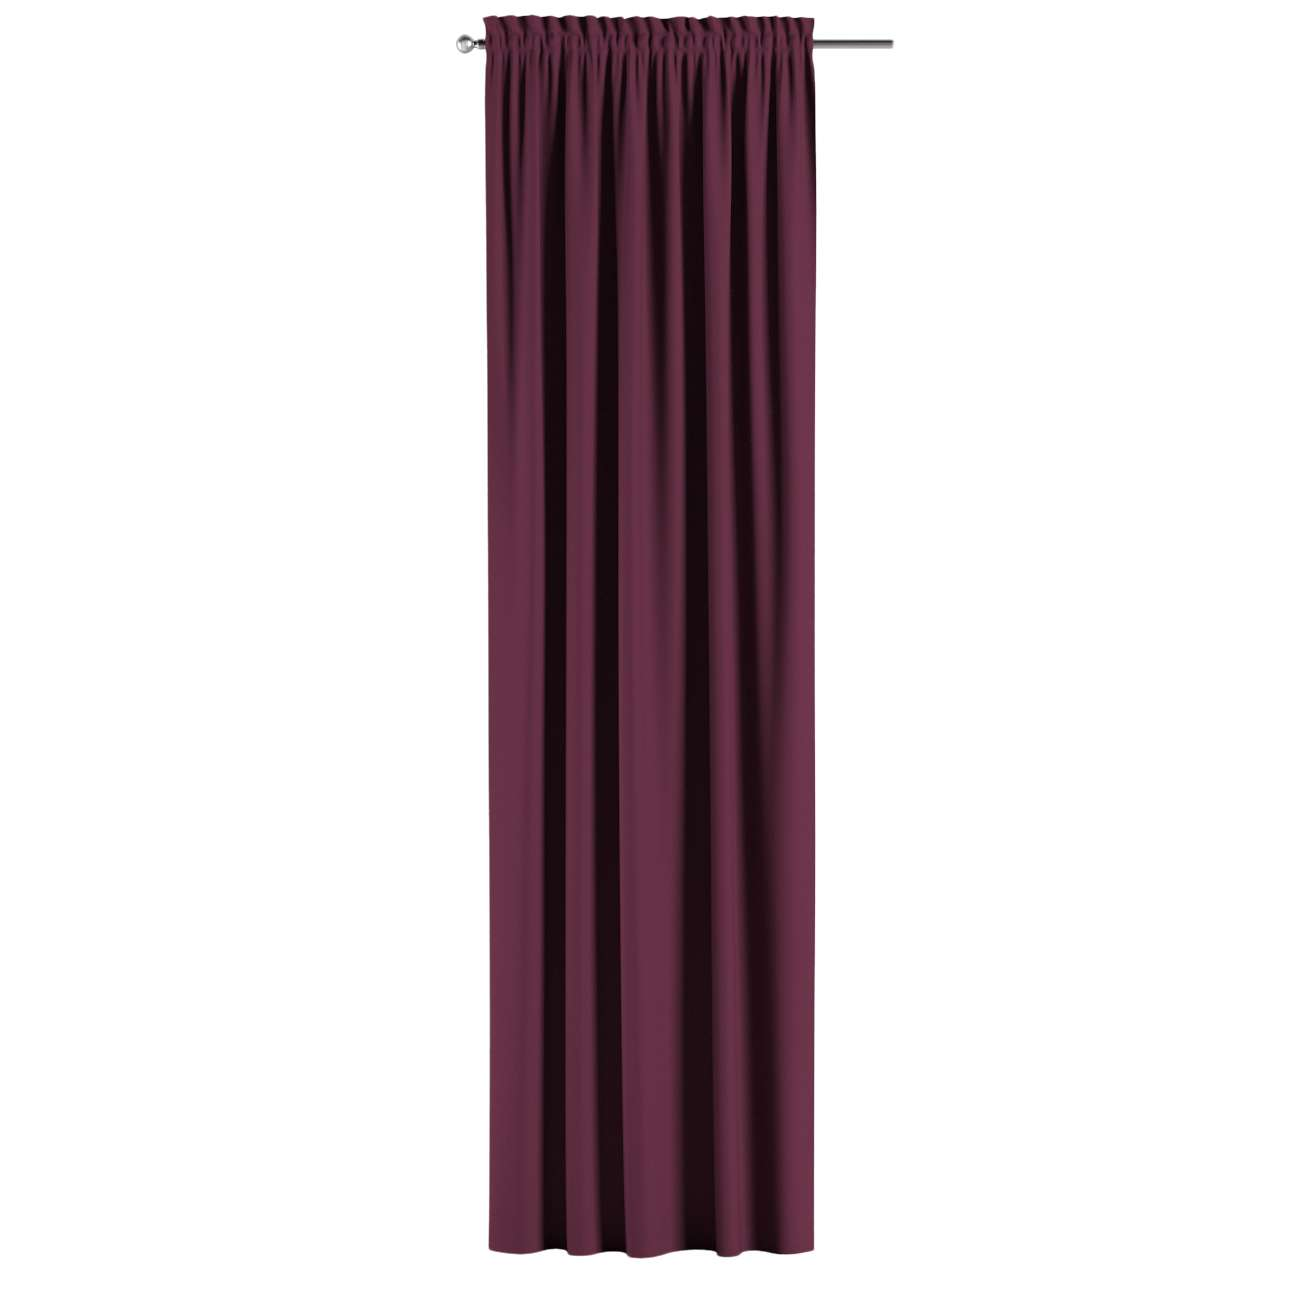 Blackout slot and frill curtains 140 x 260 cm (approx. 55 x 102 inch) in collection Blackout, fabric: 269-53